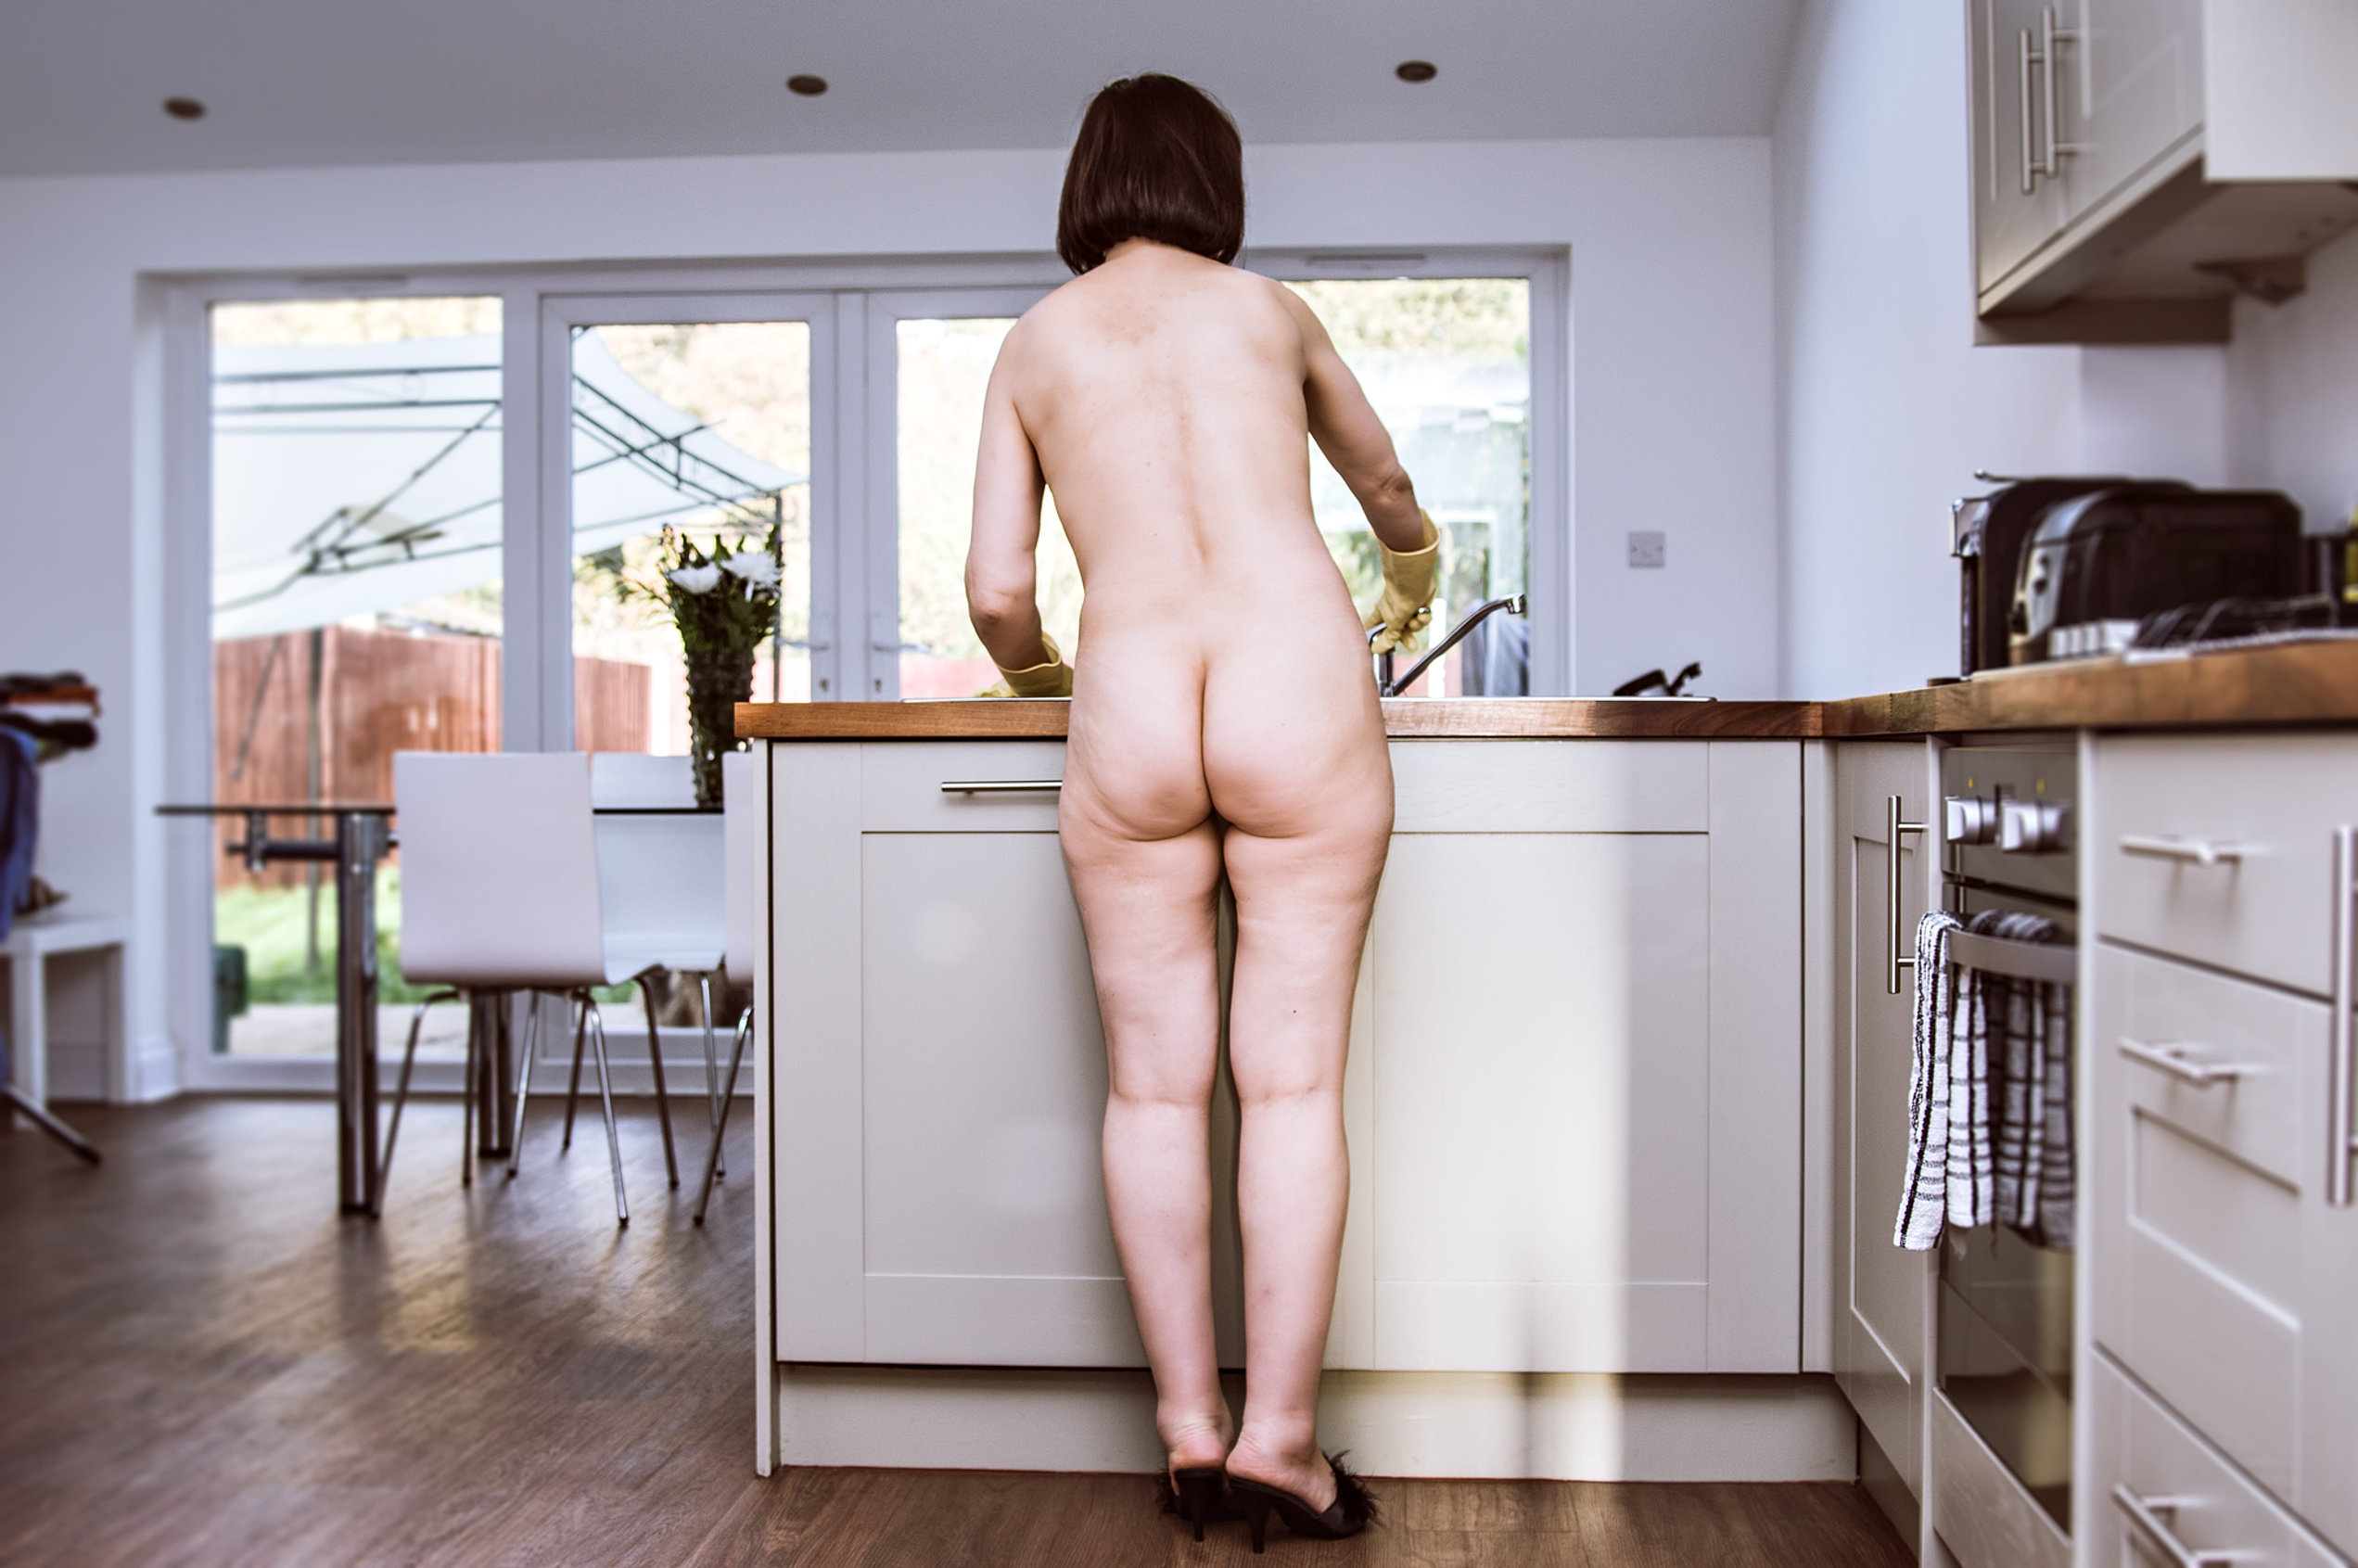 House Cleaning In The Nude 80